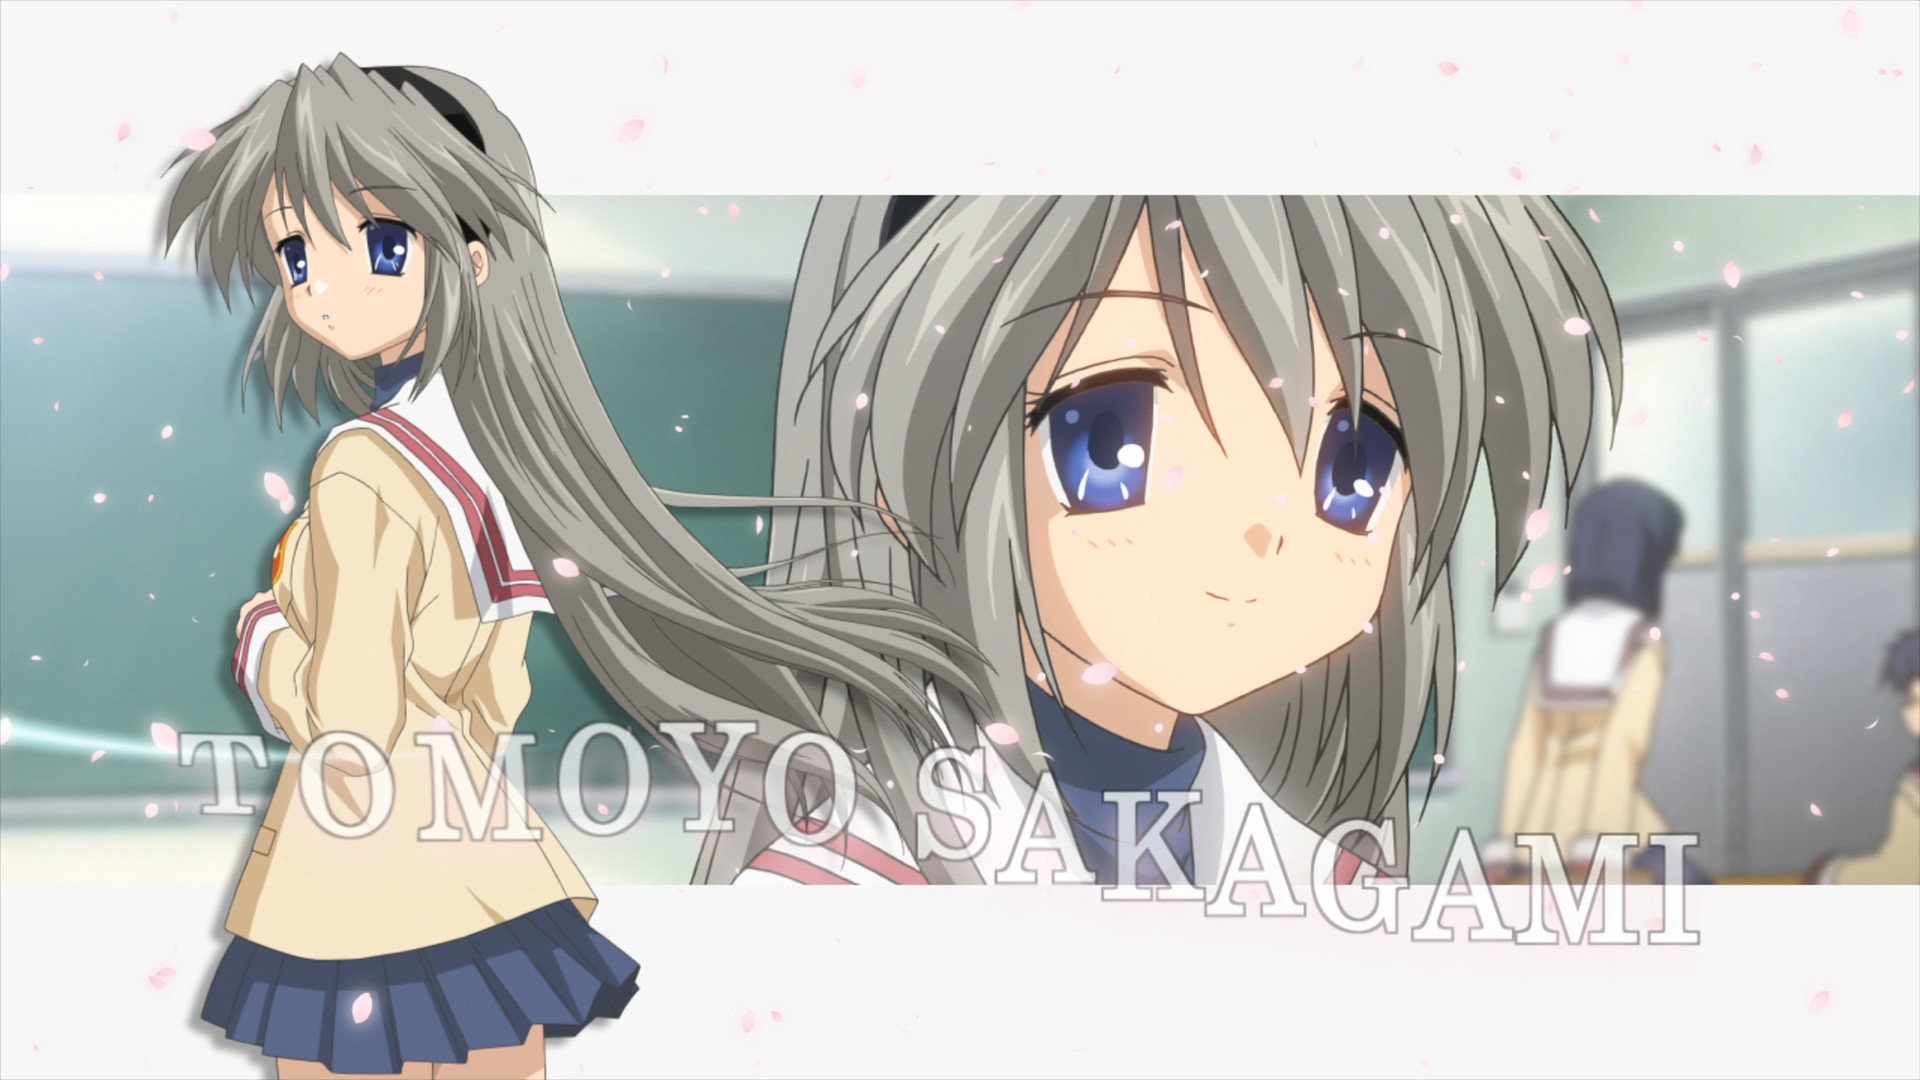 Download full hd 1920x1080 Tomoyo Sakagami computer background ID:316707 for free